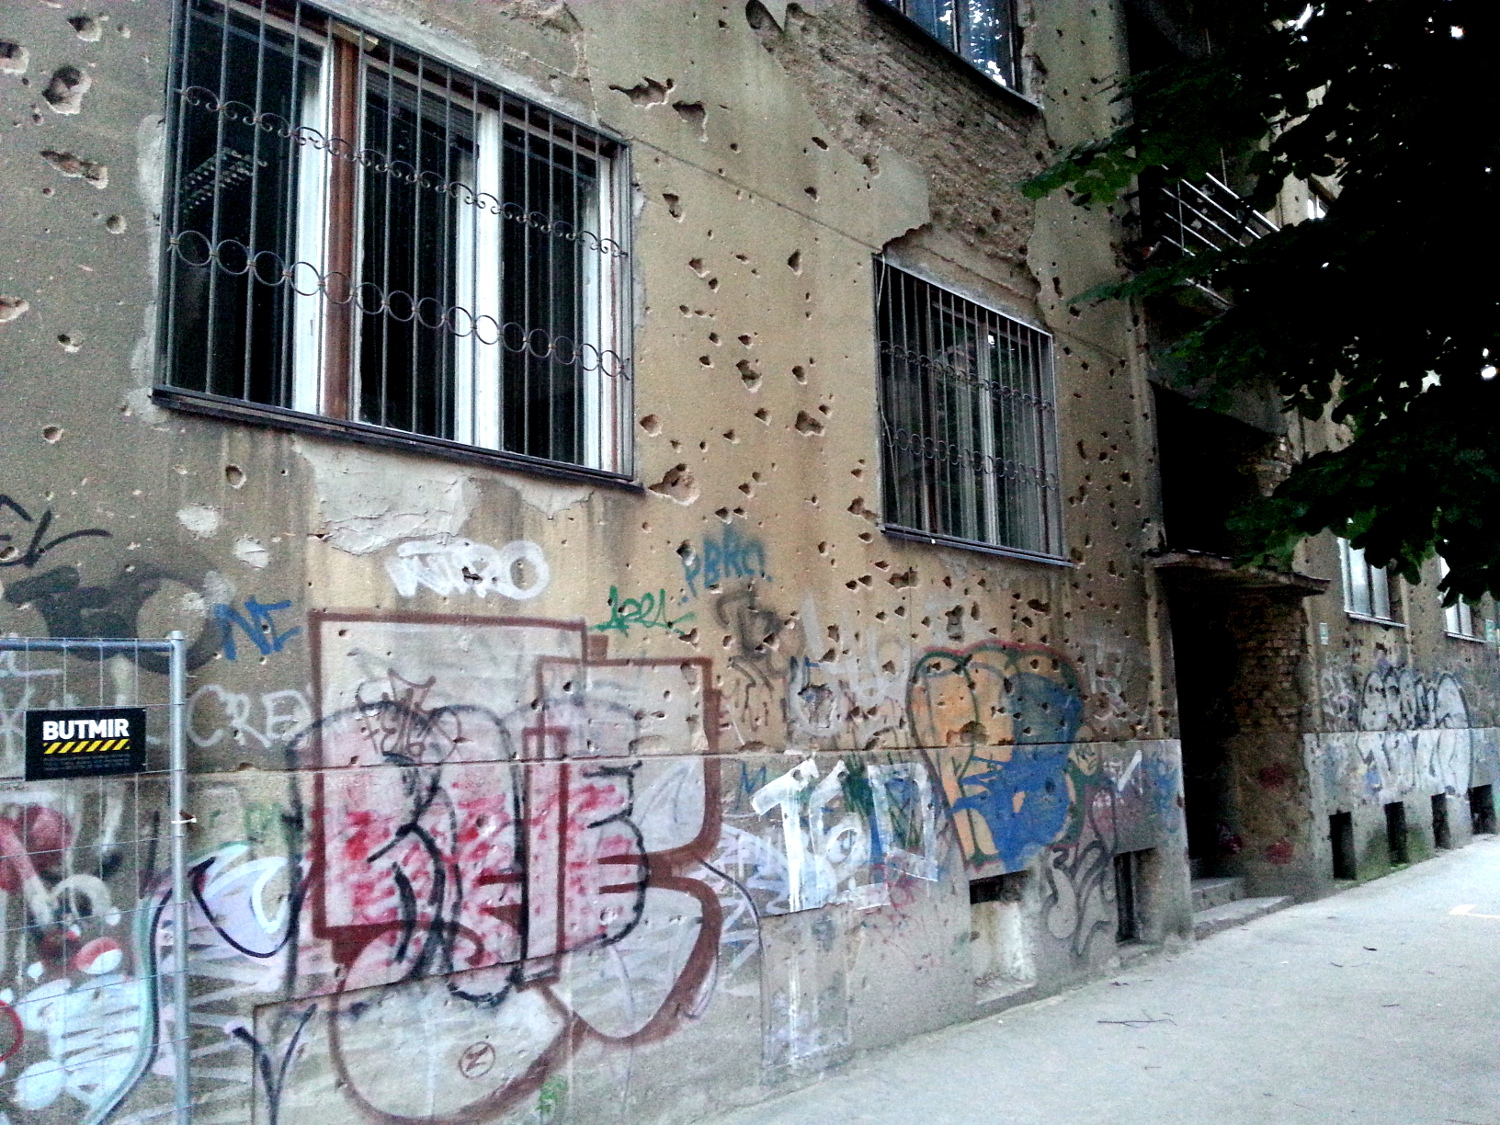 Sarajevo - shooting traces on a wall